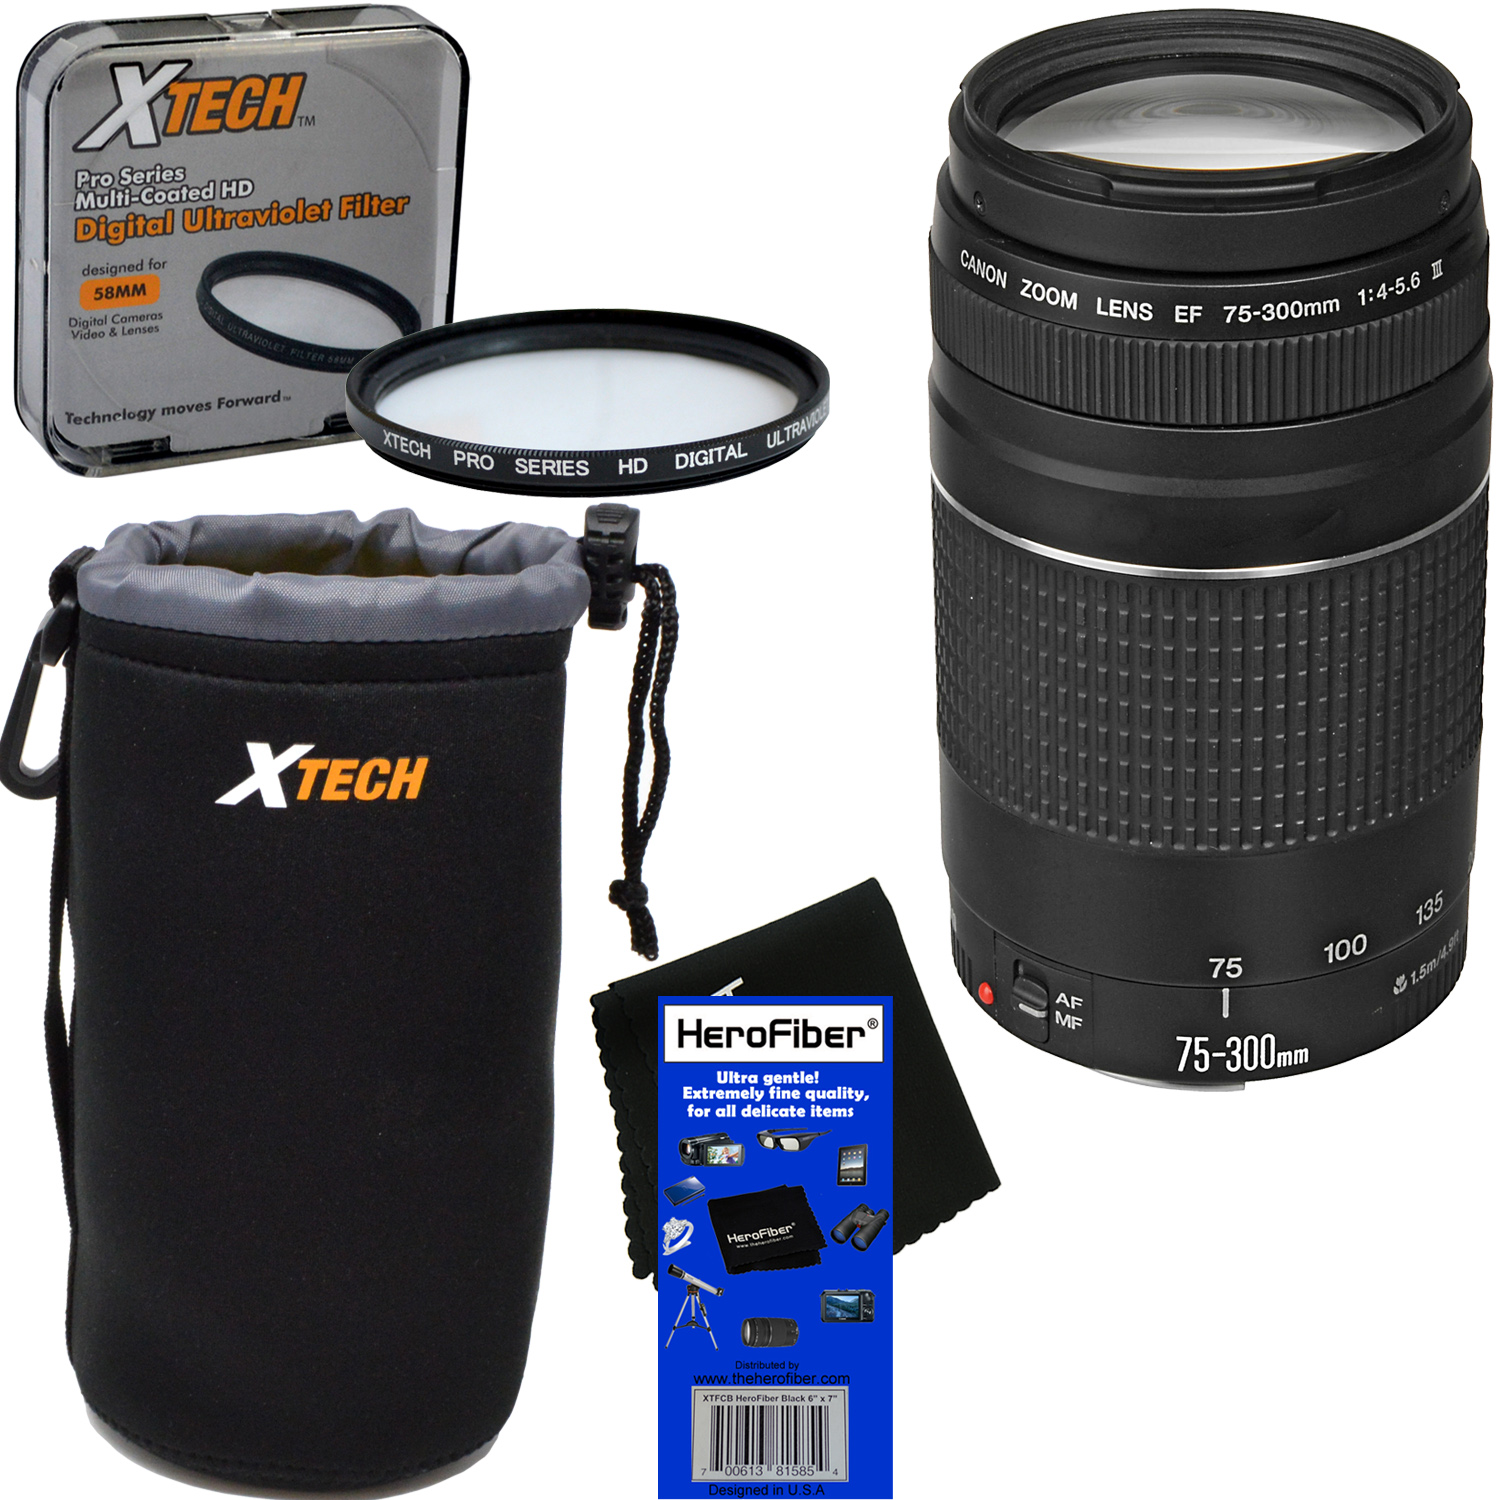 Canon EF 75-300mm f/4-5.6 III Telephoto Zoom Lens for EOS 7D, 60D, 70D, EOS Rebel SL1, T1i, T2i, T3, T3i, T4i, T5, T5i, T6, T6i, T6s, T7i, XS, XSi, XT, & XTi Digital SLR Cameras + 3pc Accessory Kit